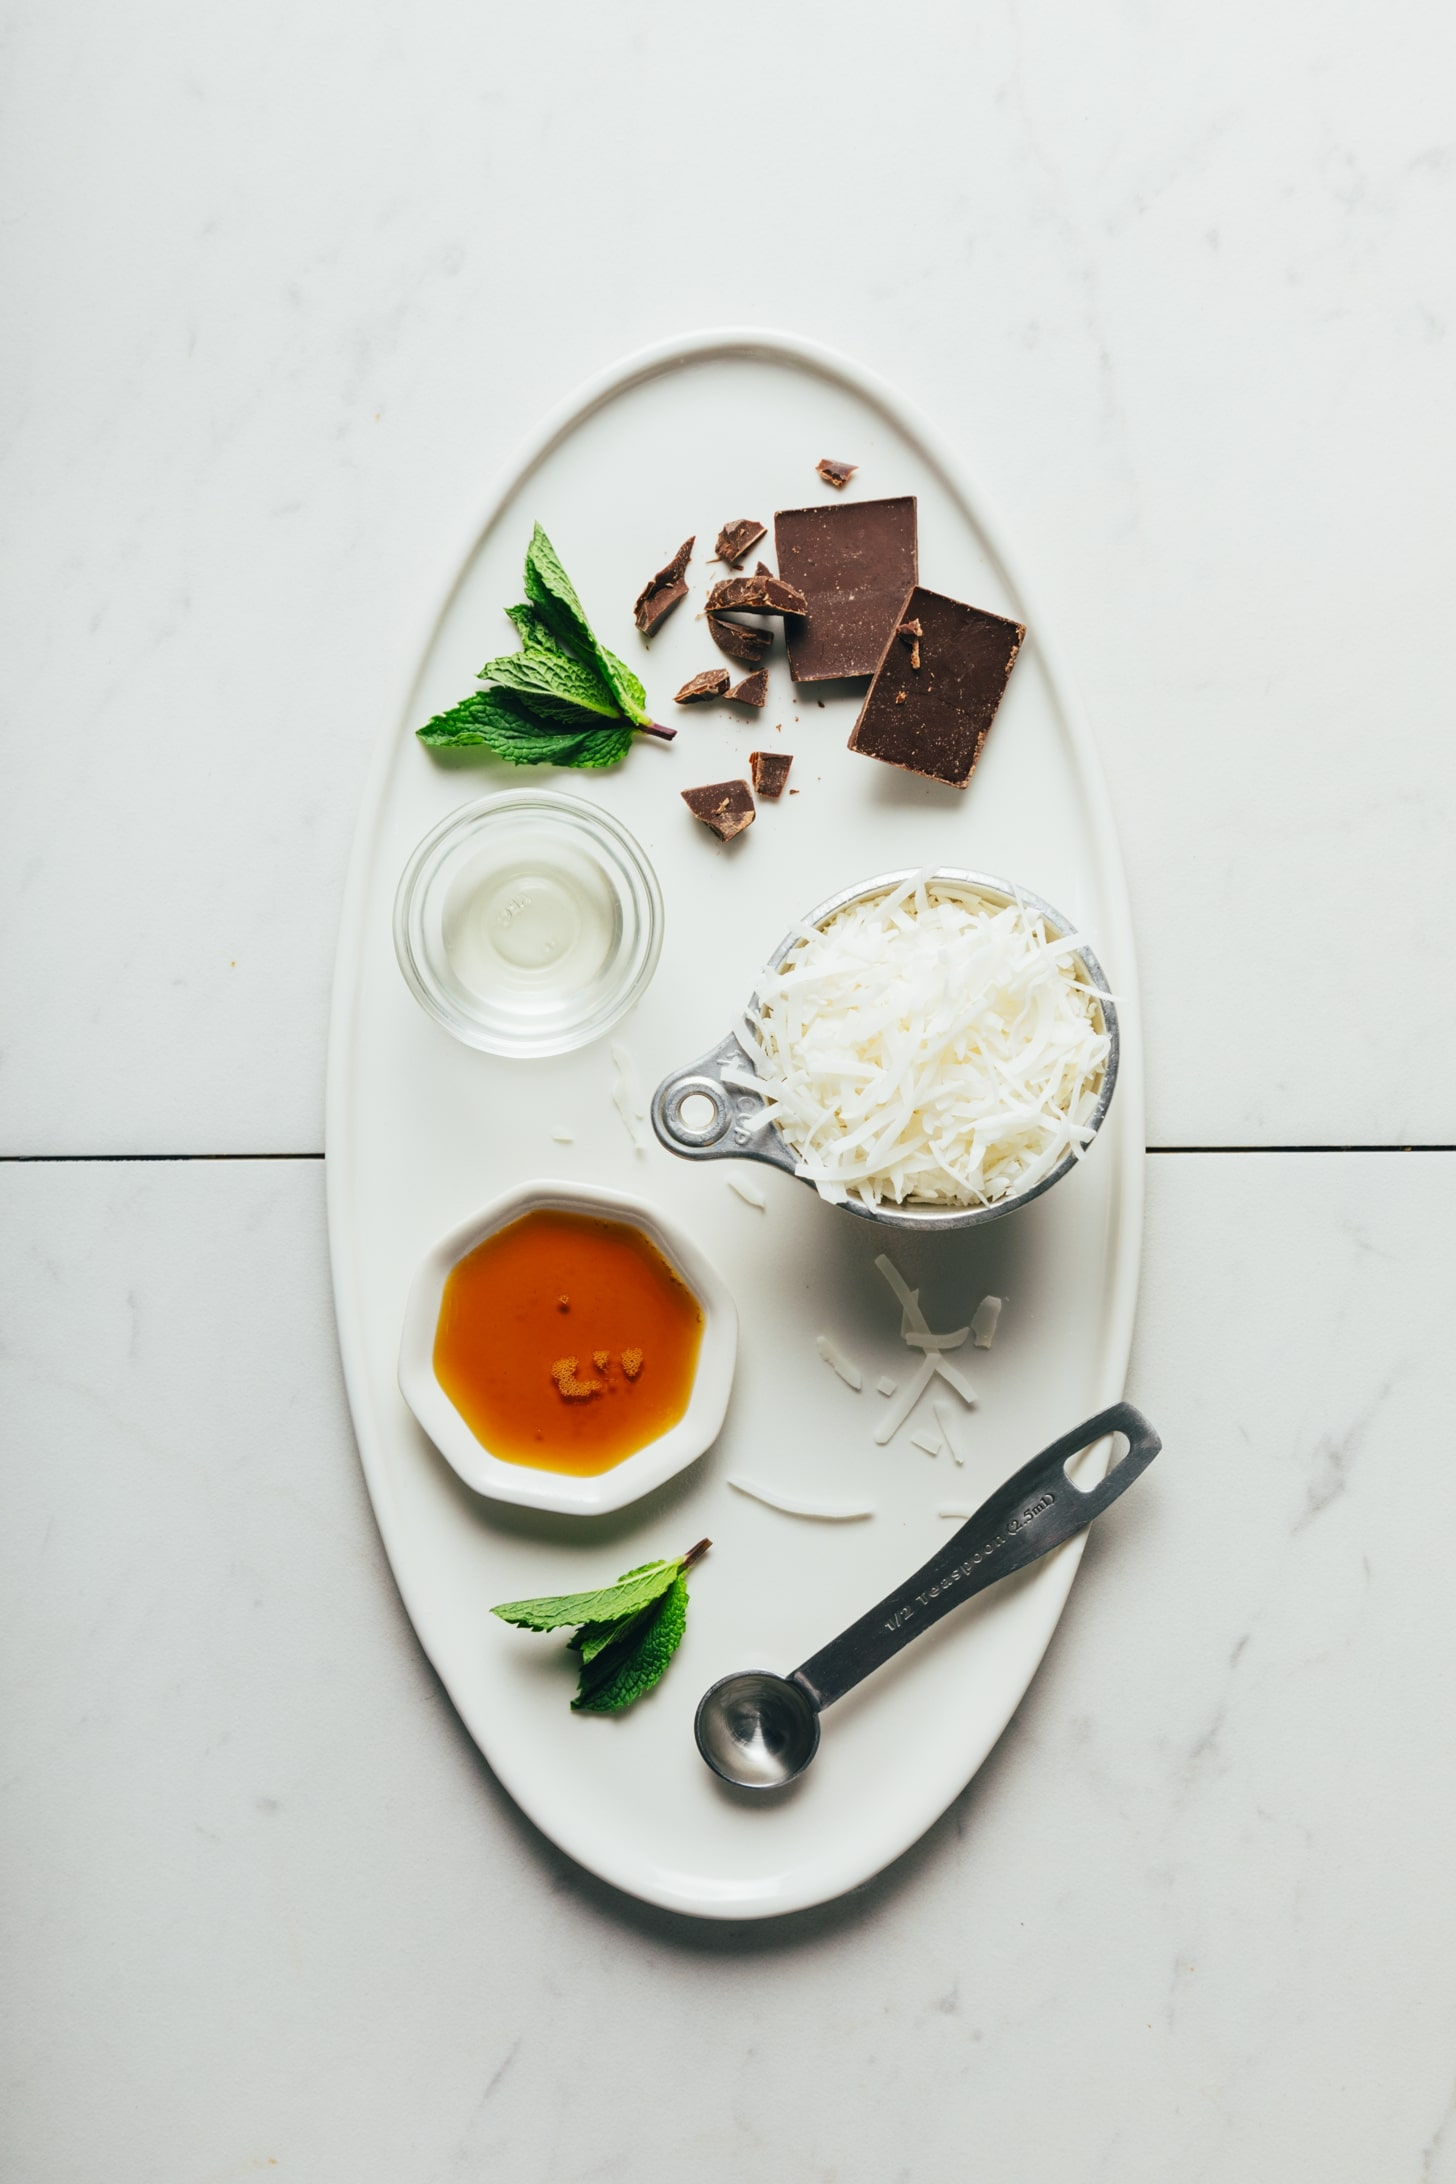 Tray of dark chocolate, shredded coconut, coconut oil, maple syrup, and fresh mint